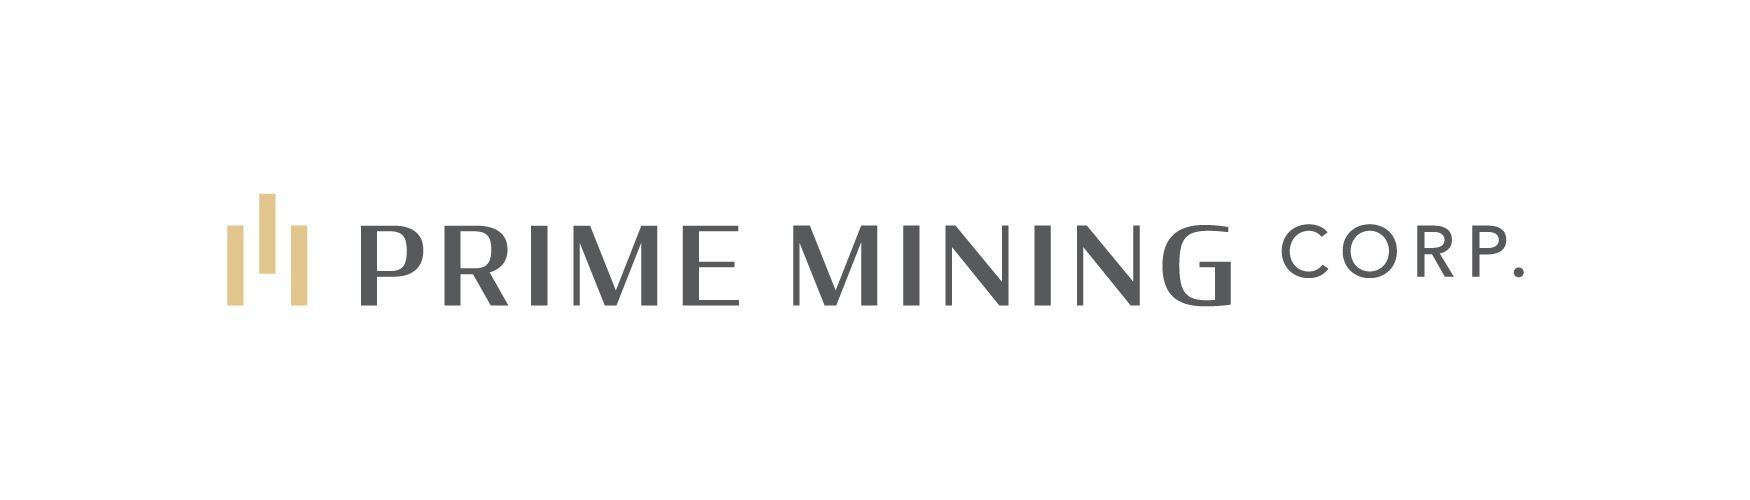 Prime Mining Begins Drilling Los Reyes As NewTrench Results Show More High-Grade at Surface